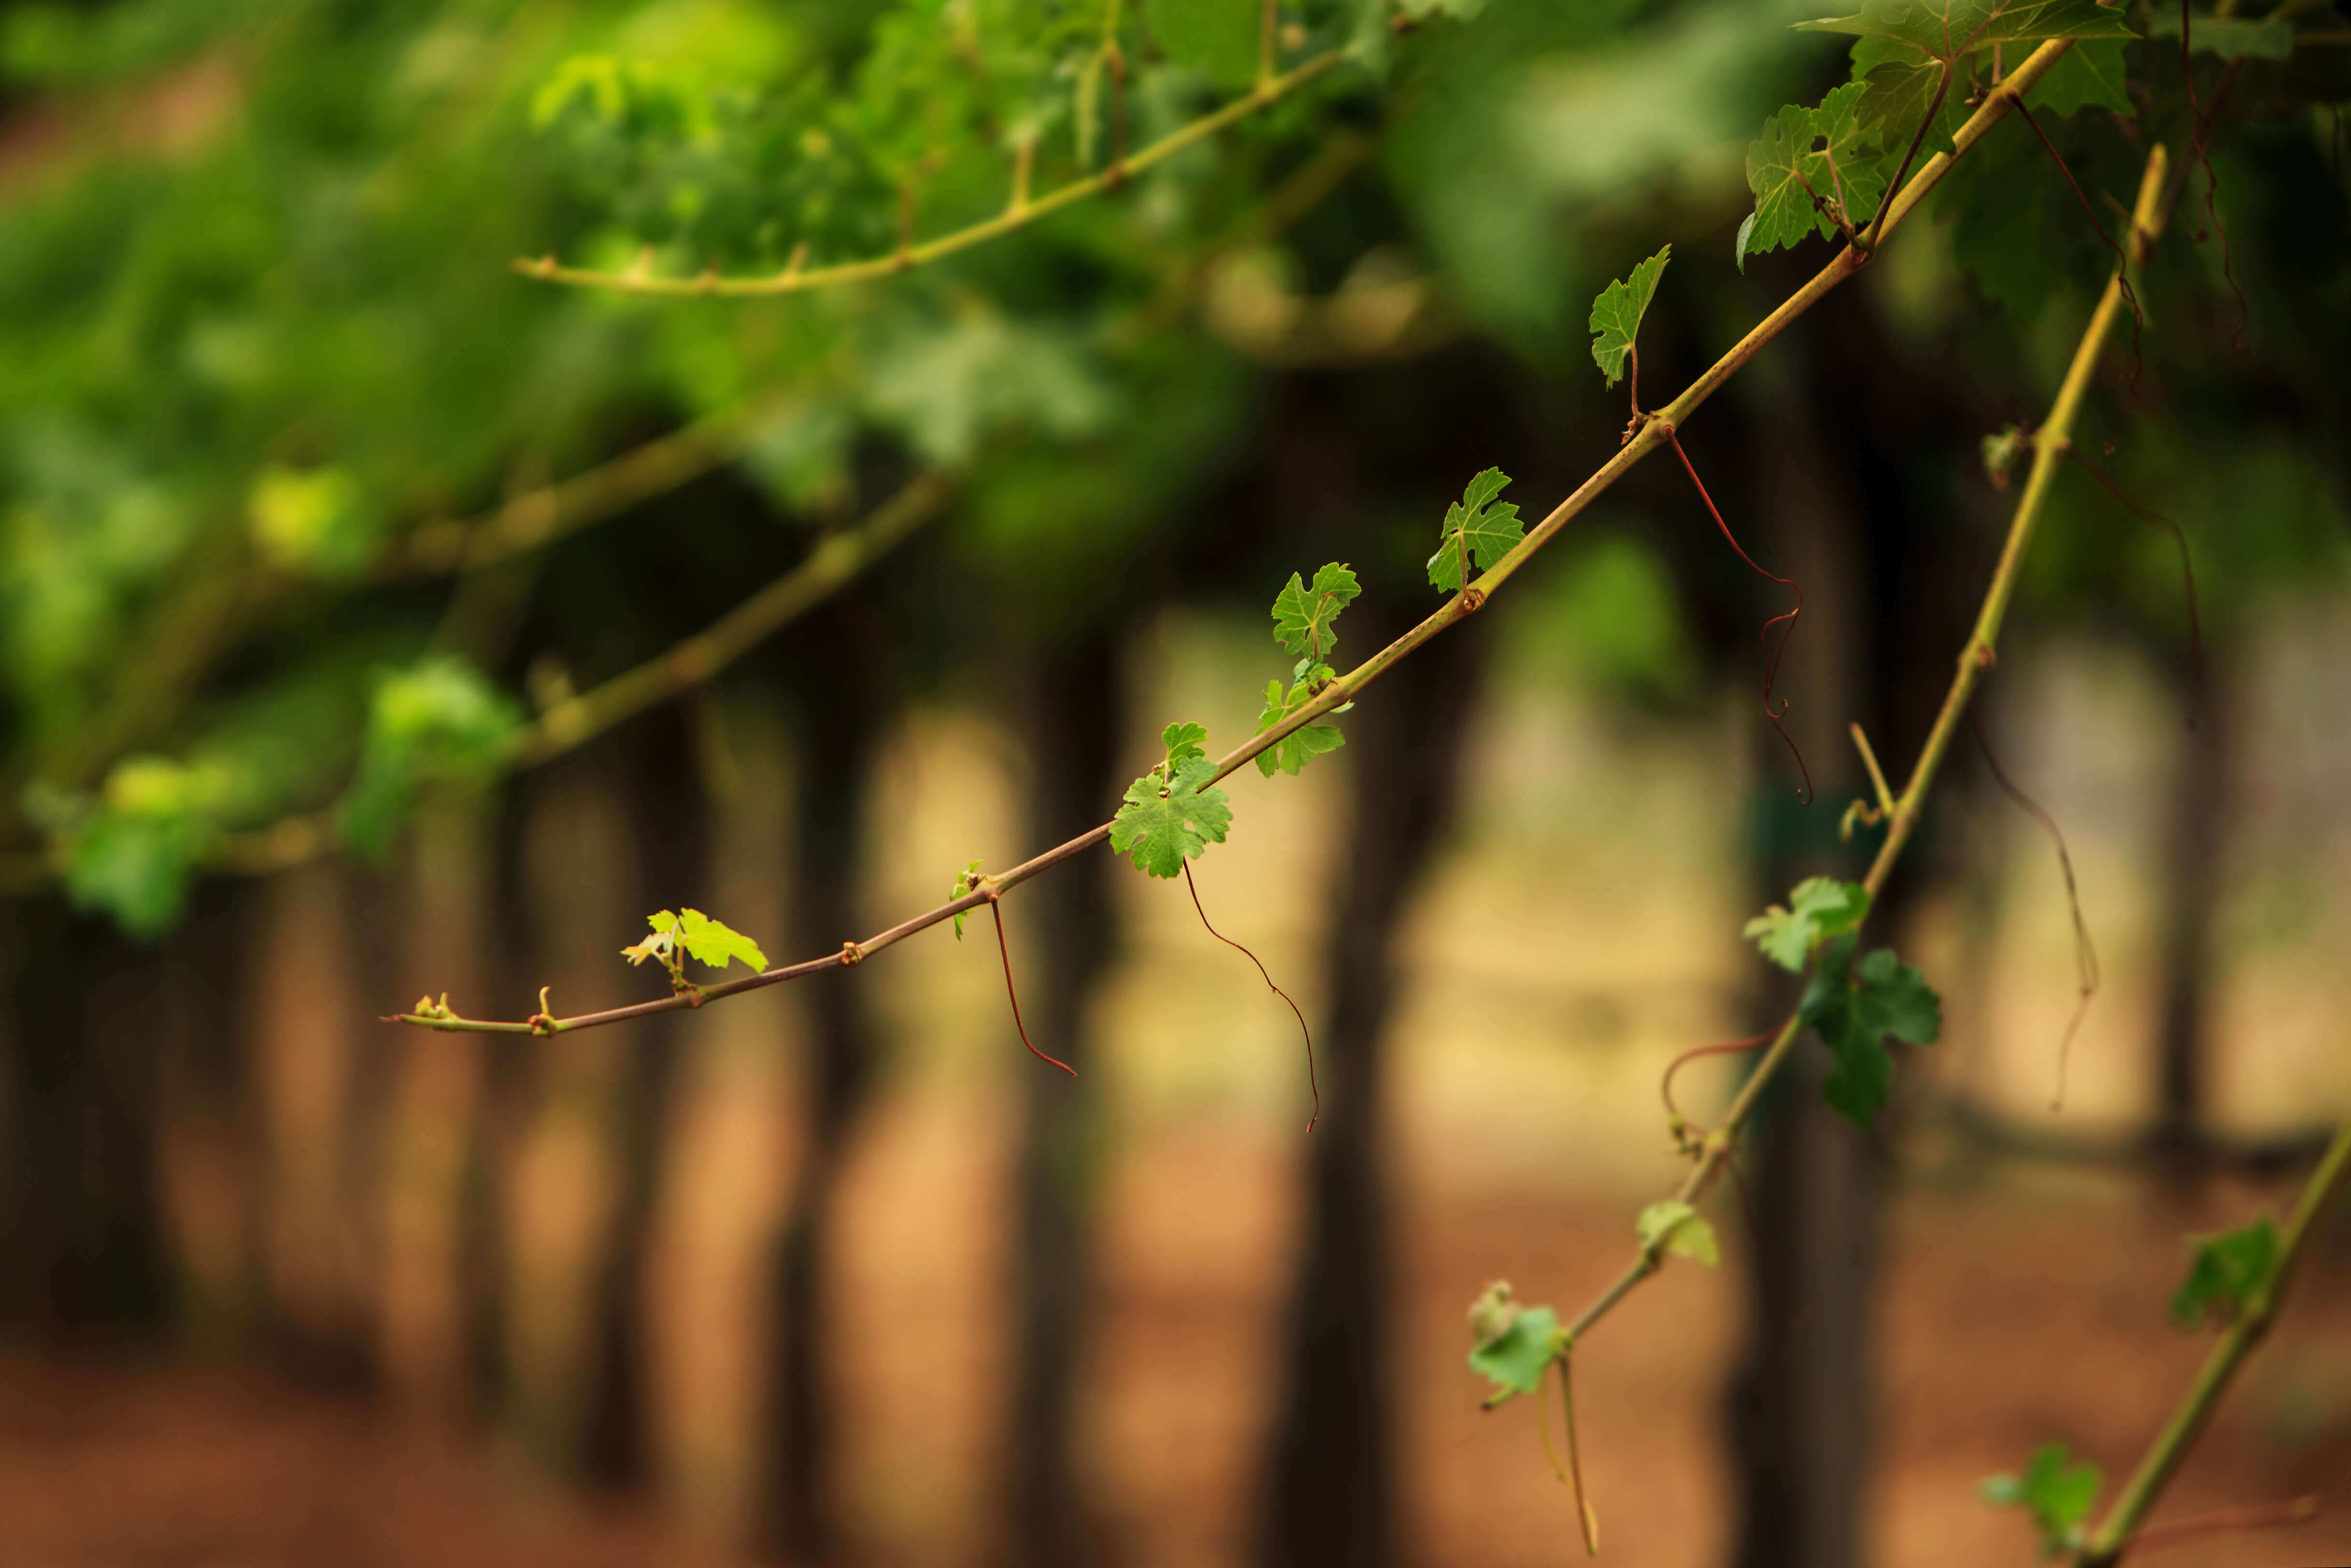 Up Close Shot of Lush Vineyard Landscape